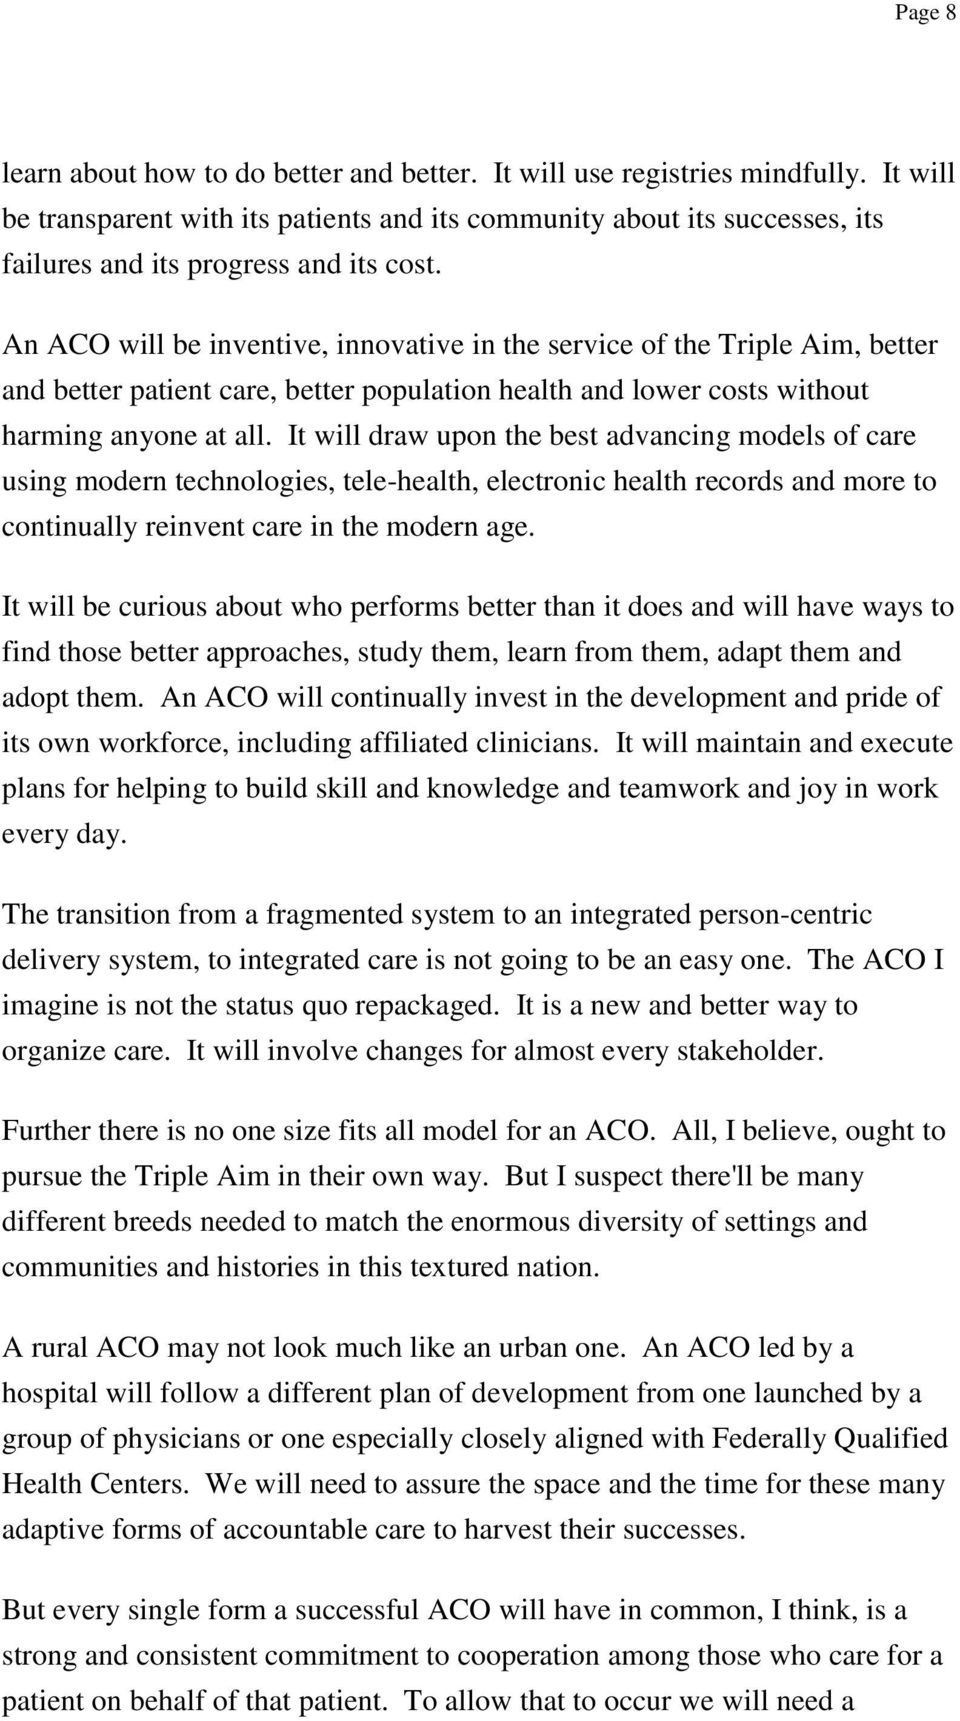 An ACO will be inventive, innovative in the service of the Triple Aim, better and better patient care, better population health and lower costs without harming anyone at all.